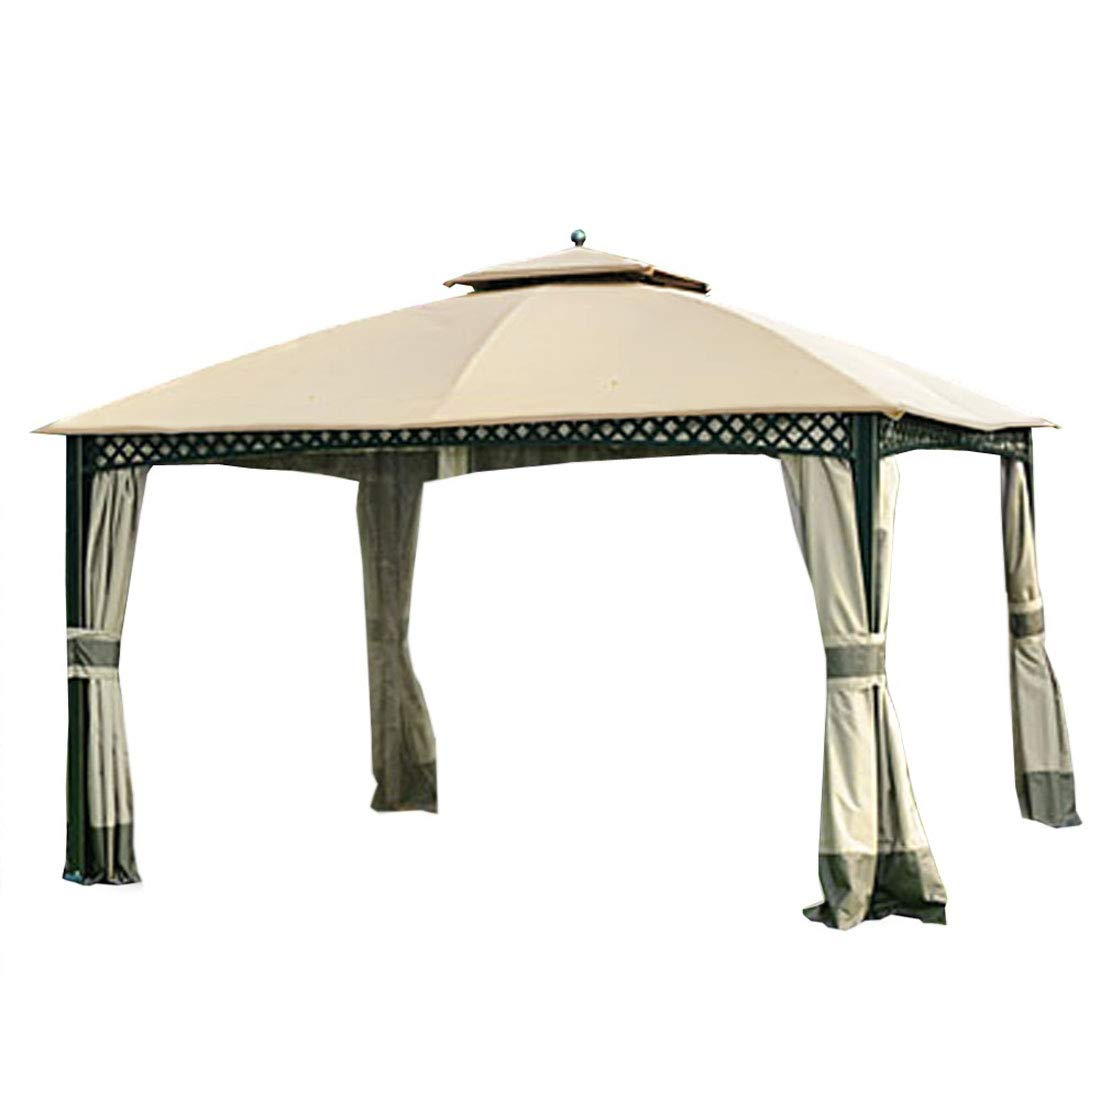 Garden Winds Replacement Canopy for The Windsor Dome Gazebo - RipLock 500